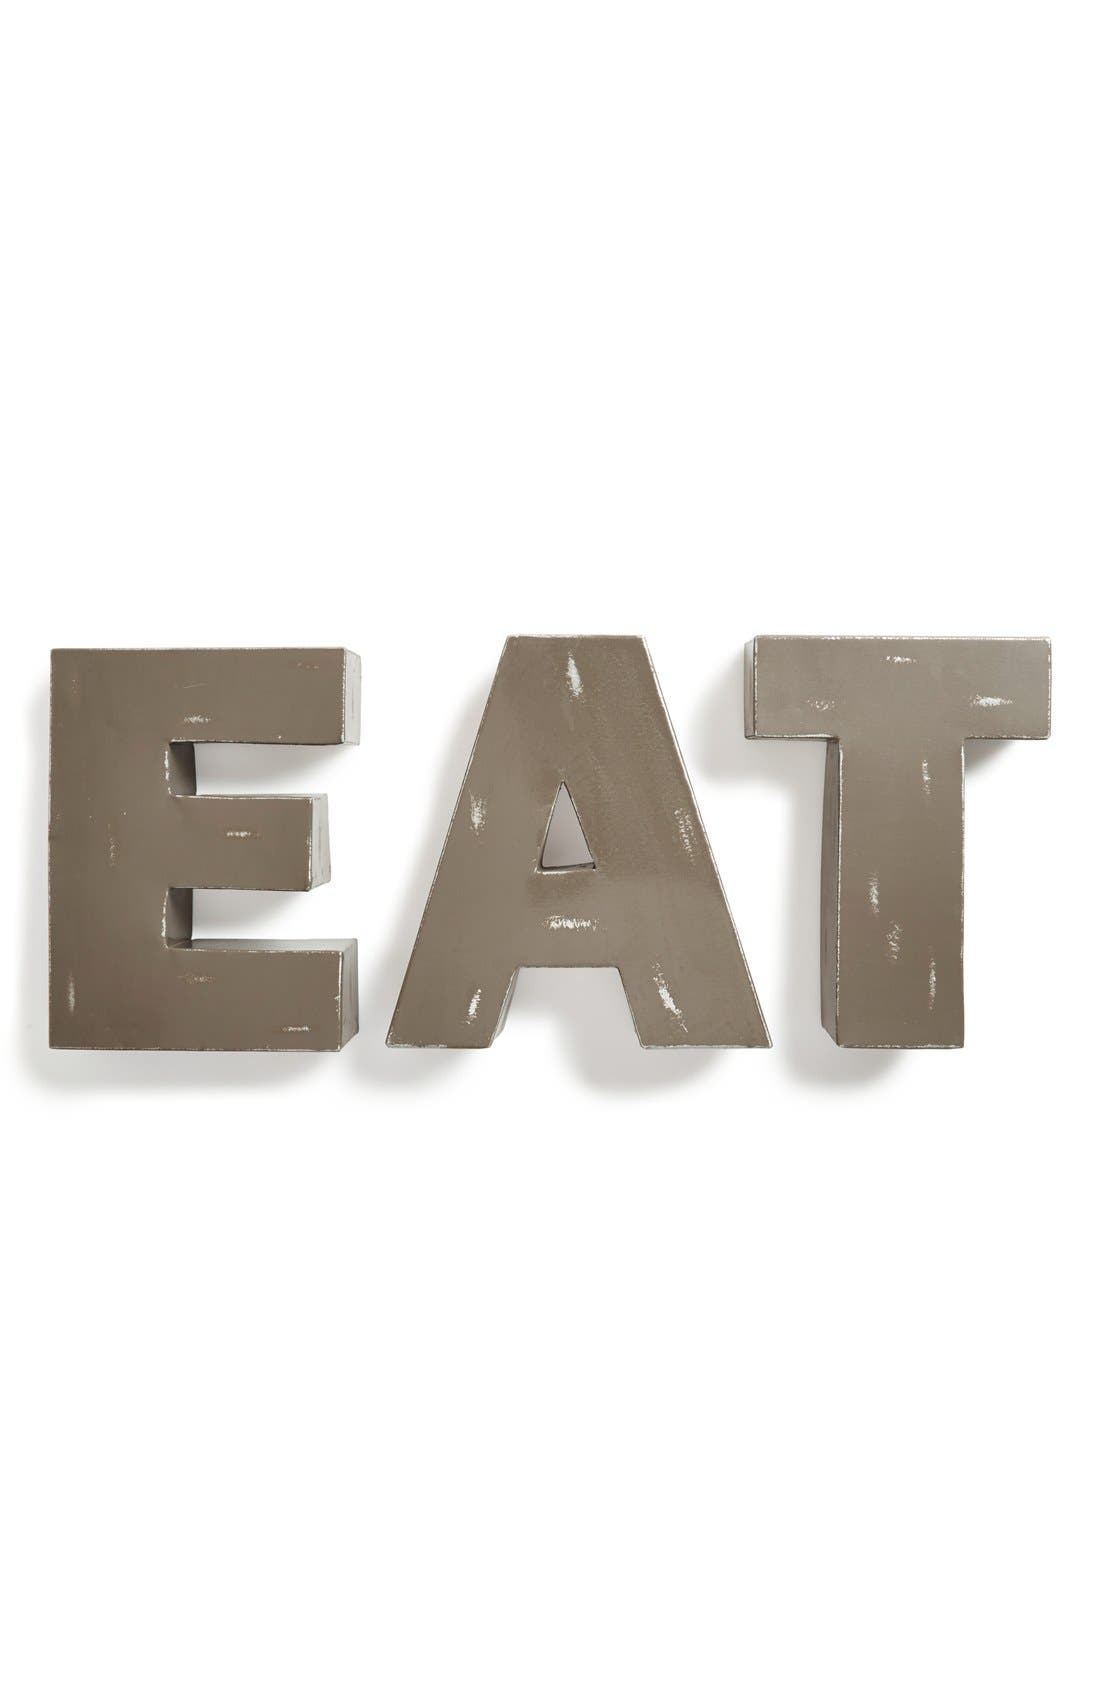 Main Image - Foreside 'Eat' Decorative Metal Letters